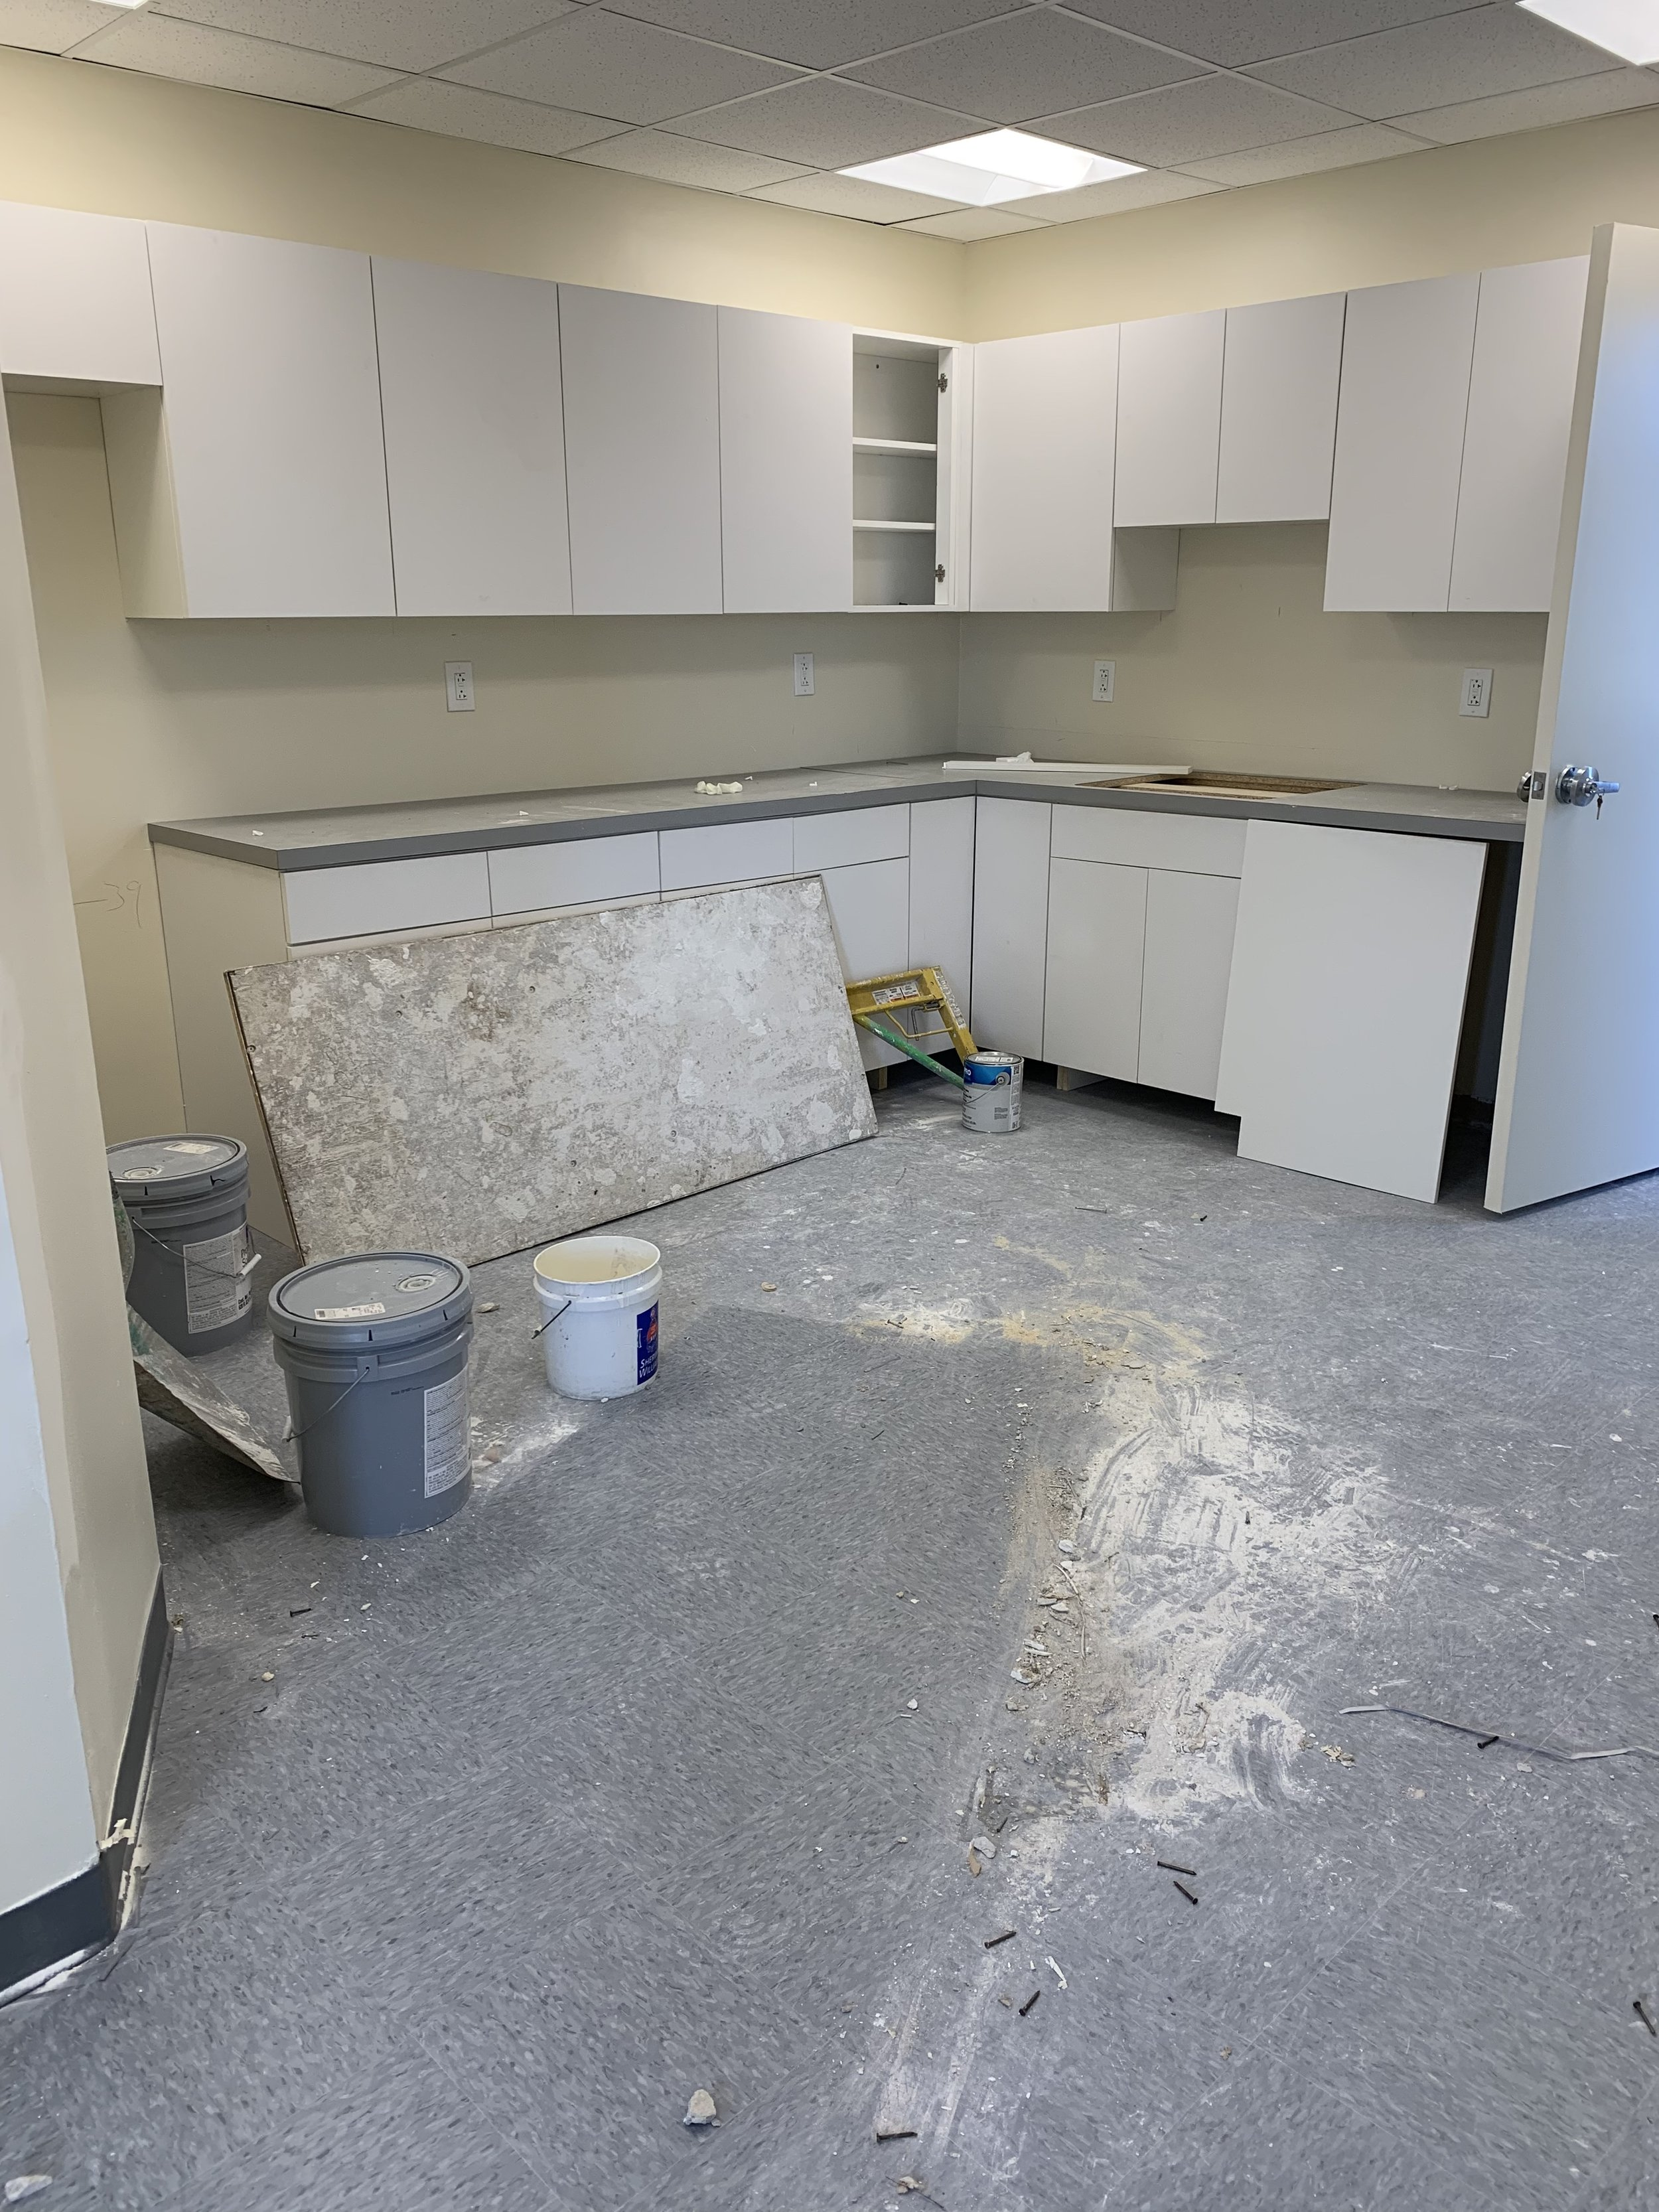 Kitchen area of the manufacturing suite.